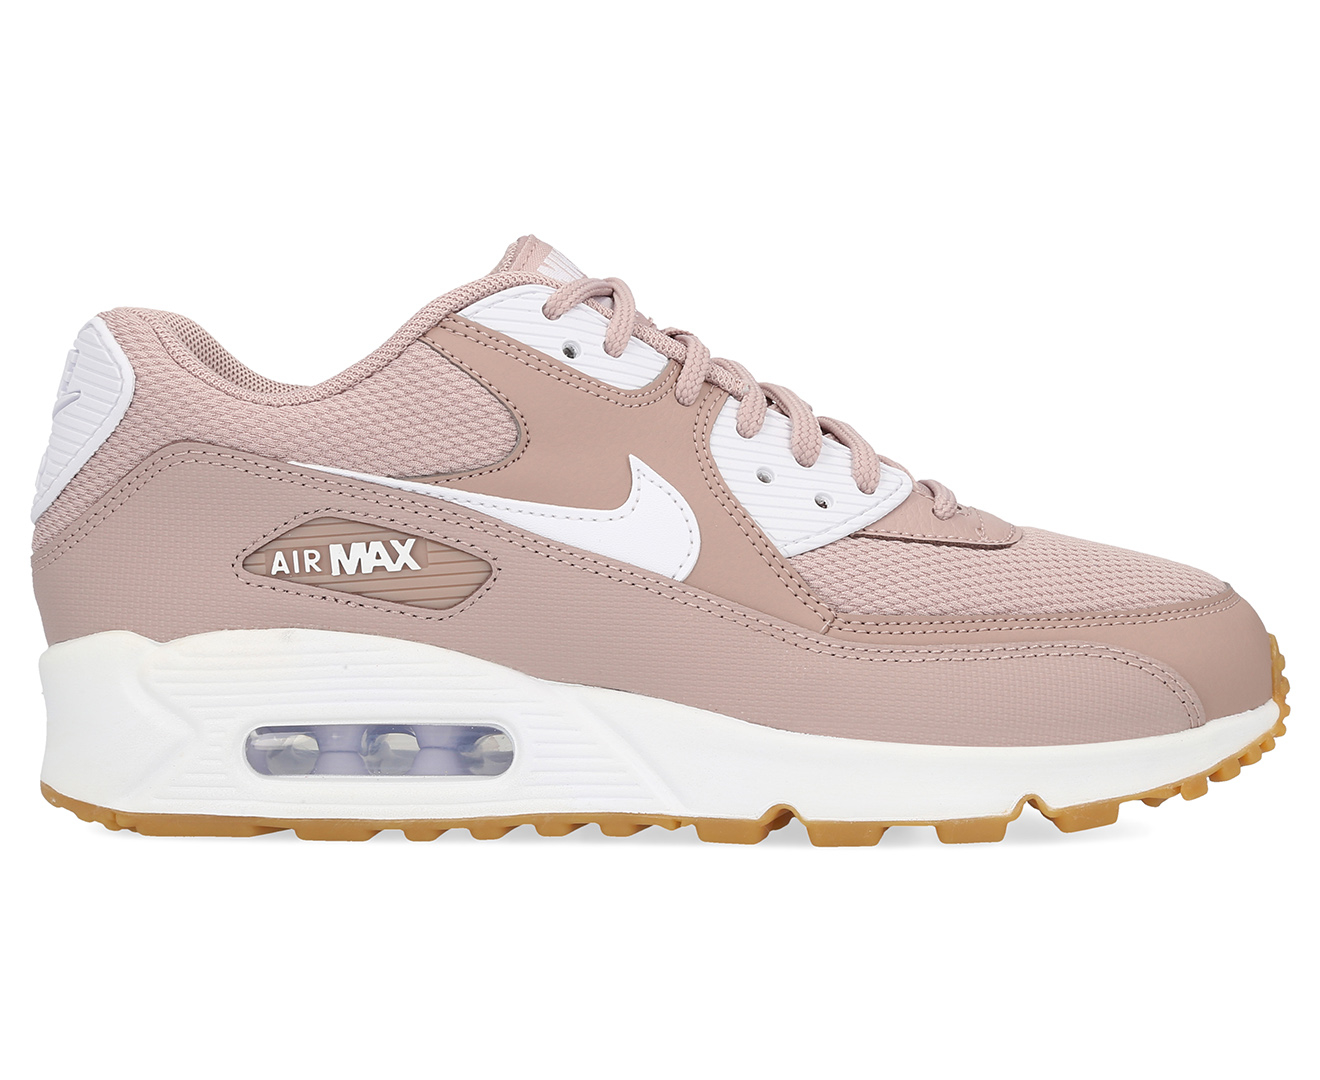 promo code f7ab8 3749a Details about Nike Women's Air Max 90 Ultra 2.0 Essential Shoe - Diffused  Taupe/White